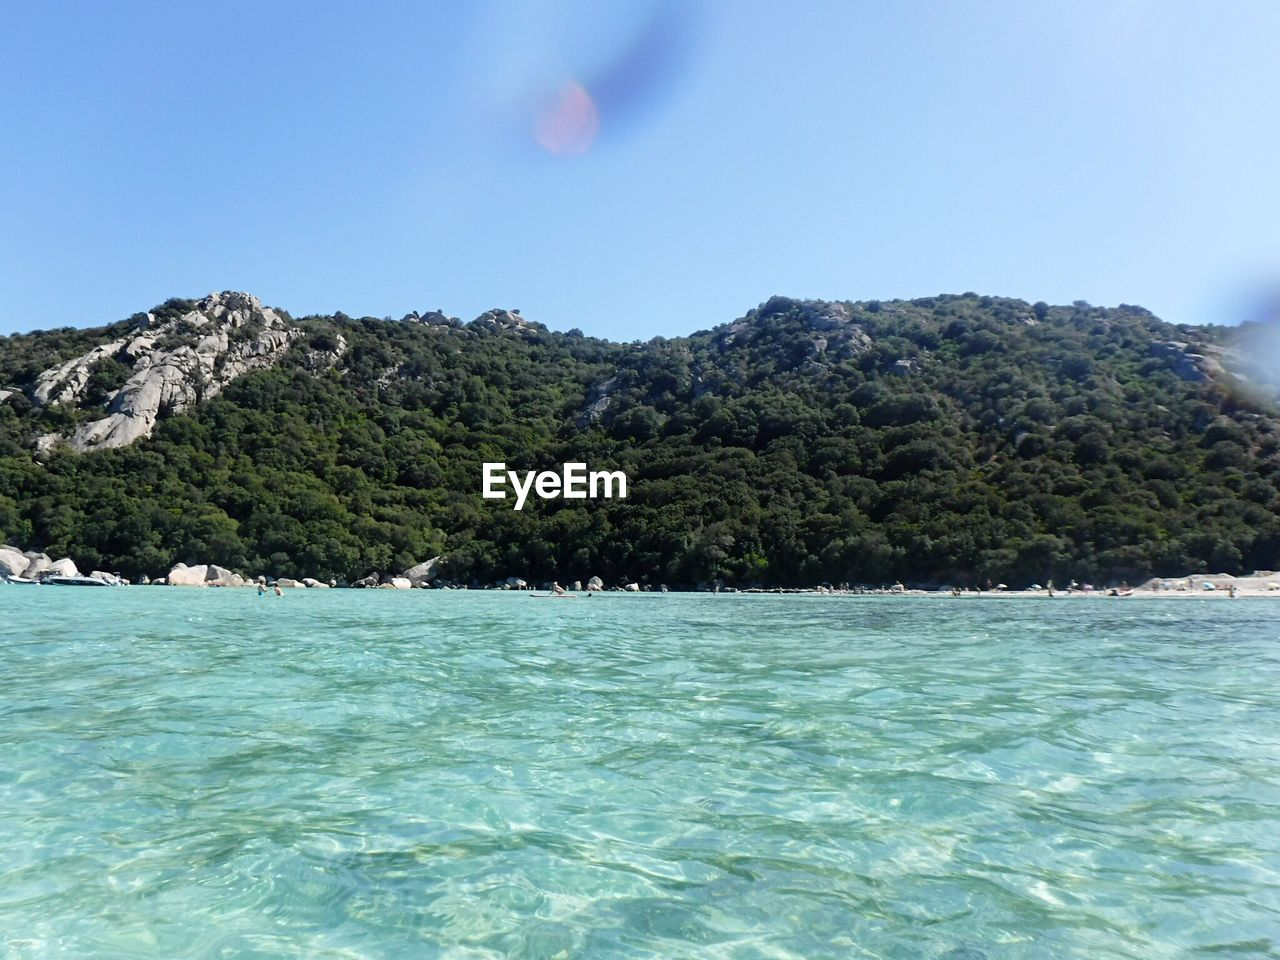 SCENIC VIEW OF SEA BY MOUNTAIN AGAINST CLEAR SKY